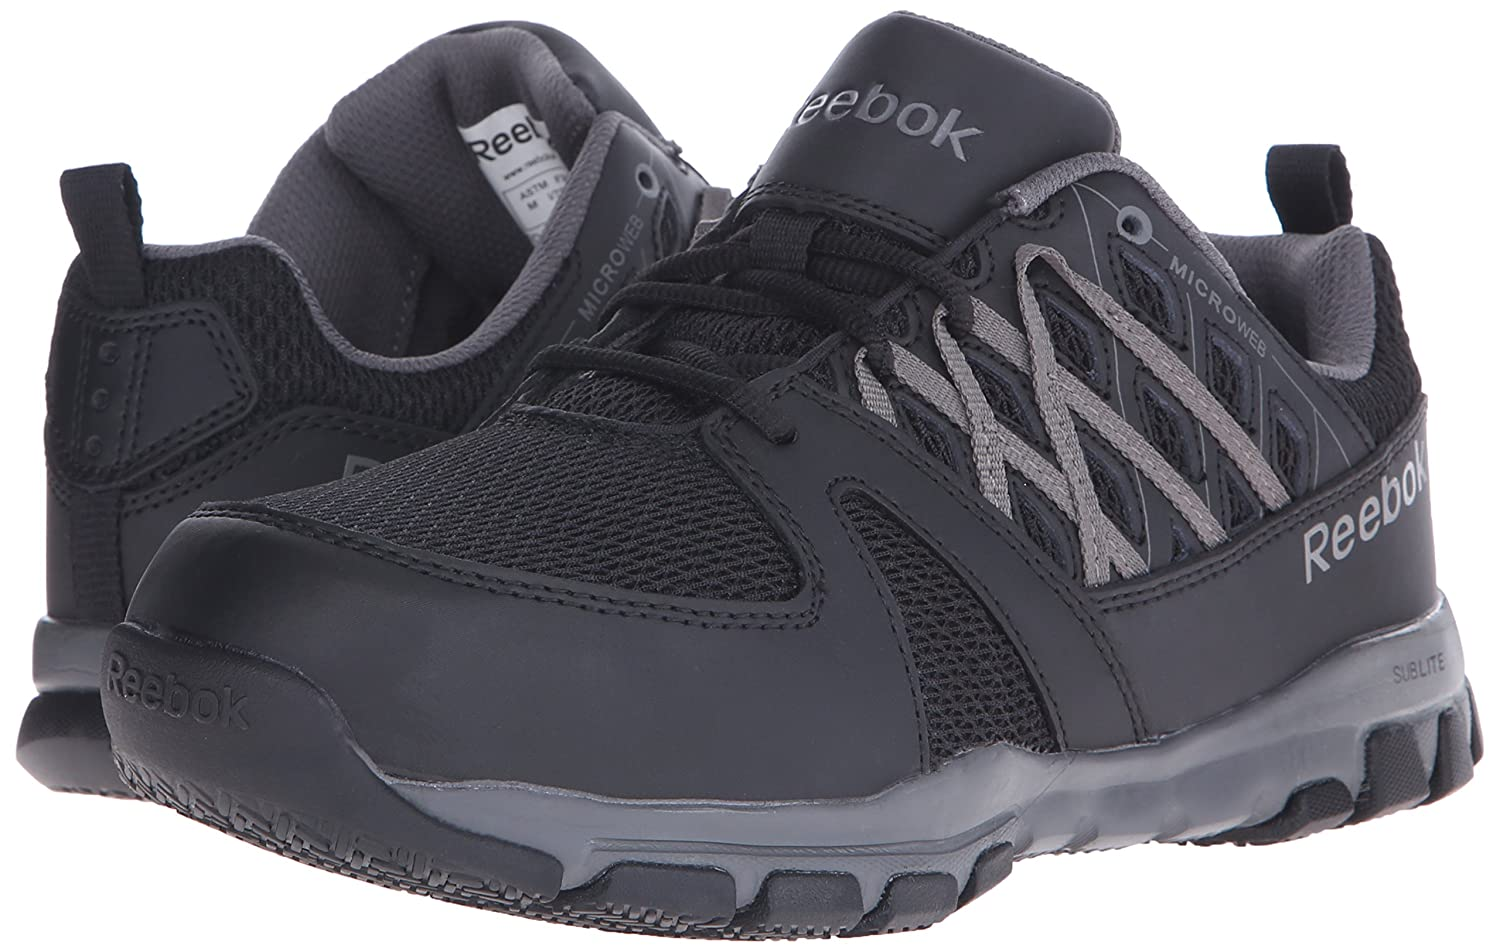 Amazon.com  Reebok Work Men s Sublite Work RB4016 Athletic Safety Shoe   Shoes 410facd80